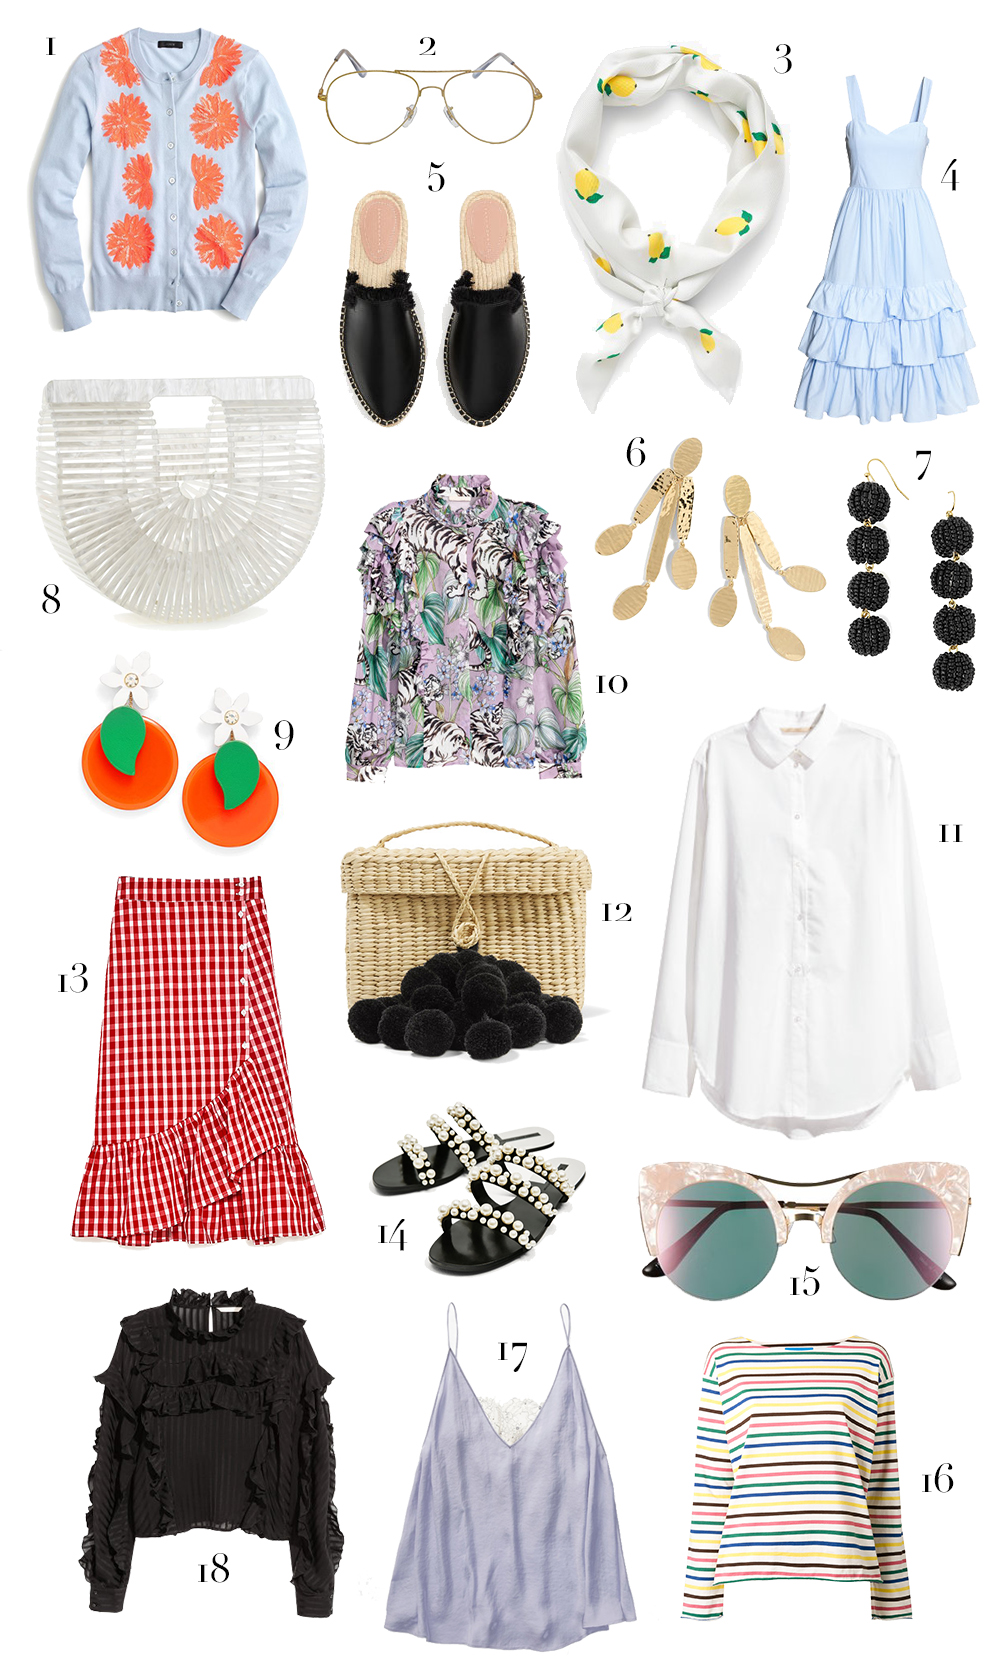 18 pretty spring pieces I can't wait to get my hands on!